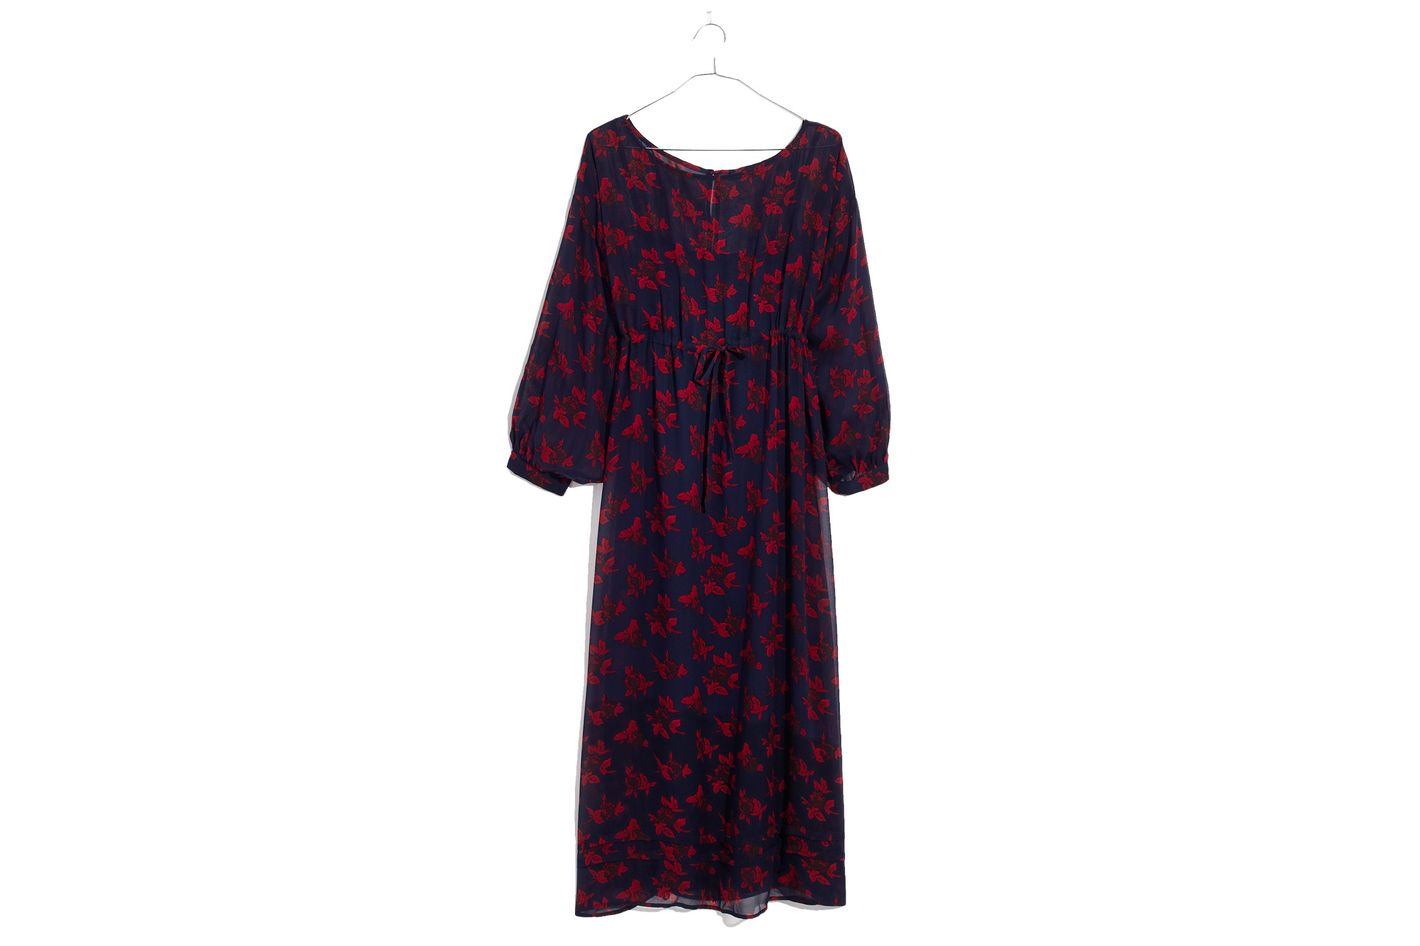 Madewell x No.6 Silk Magical Dress